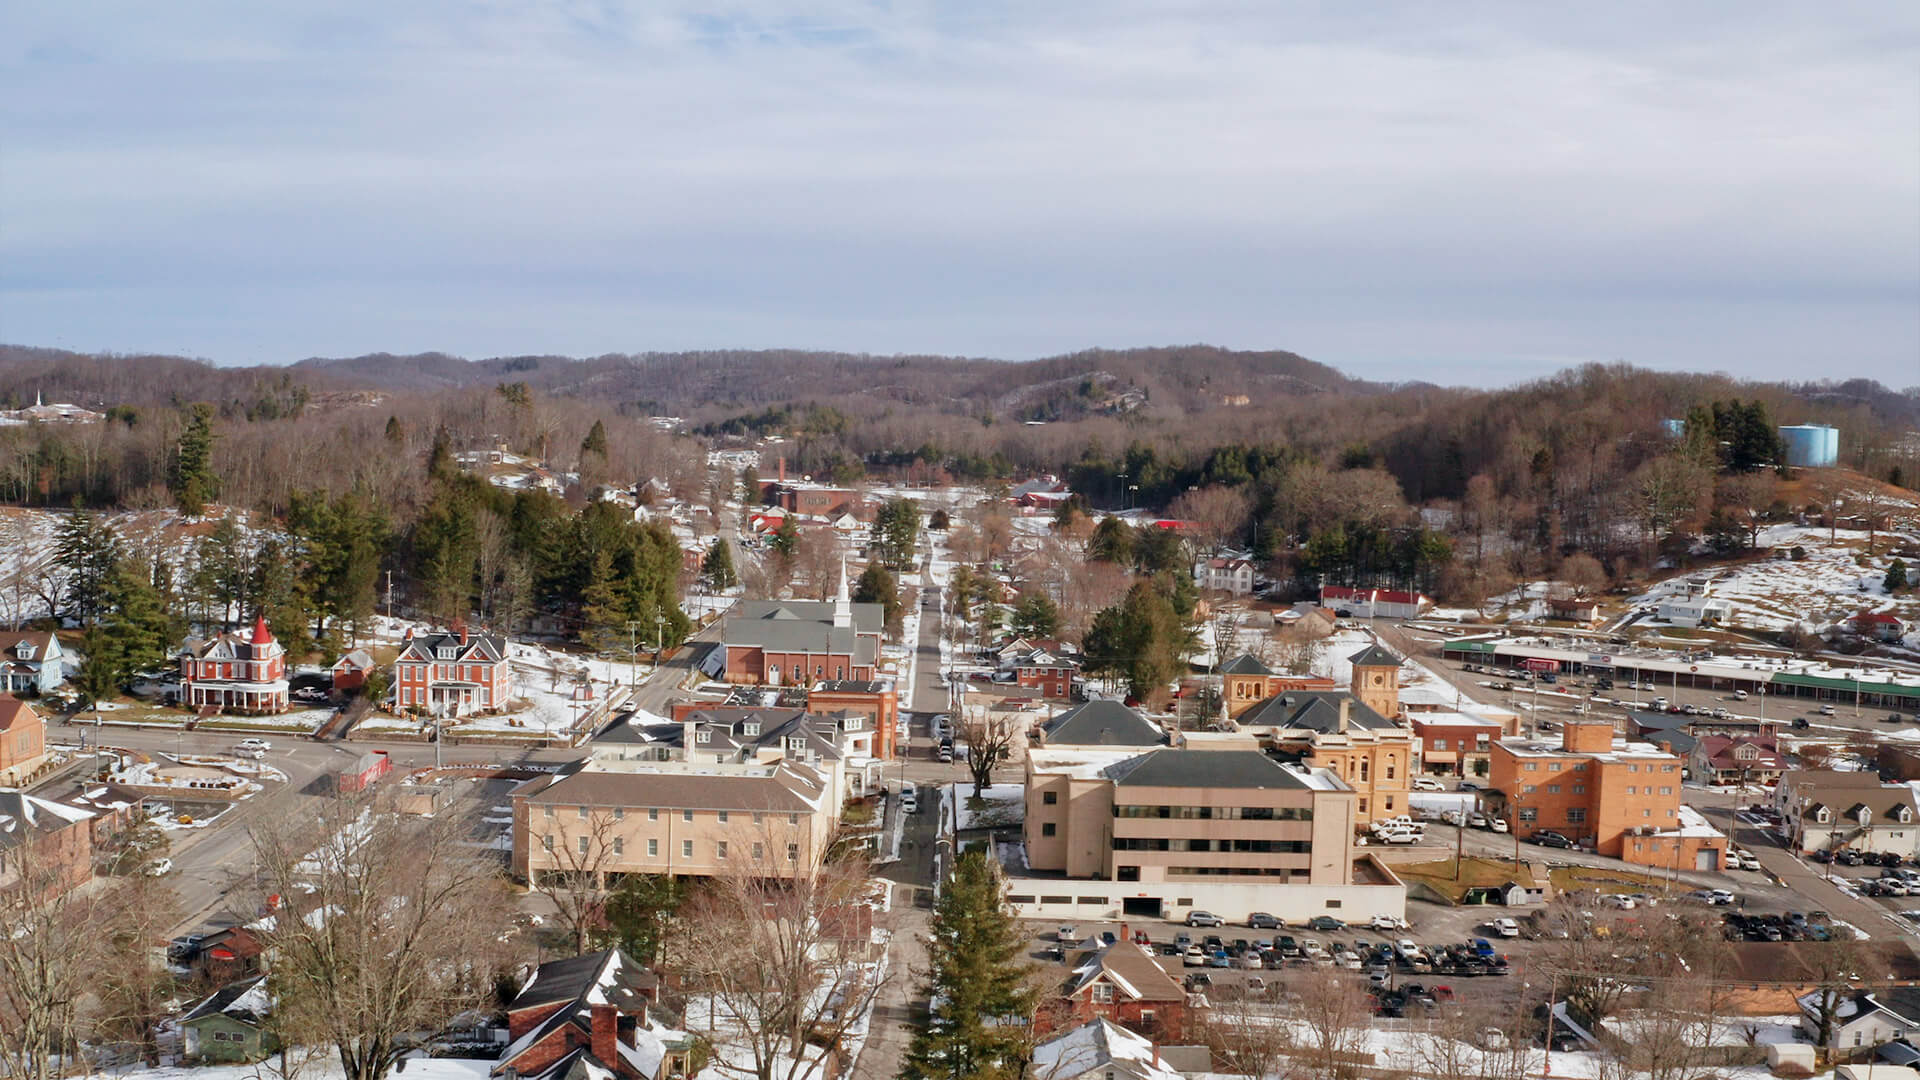 Intuit prosperity hub - Image of a small town in the US